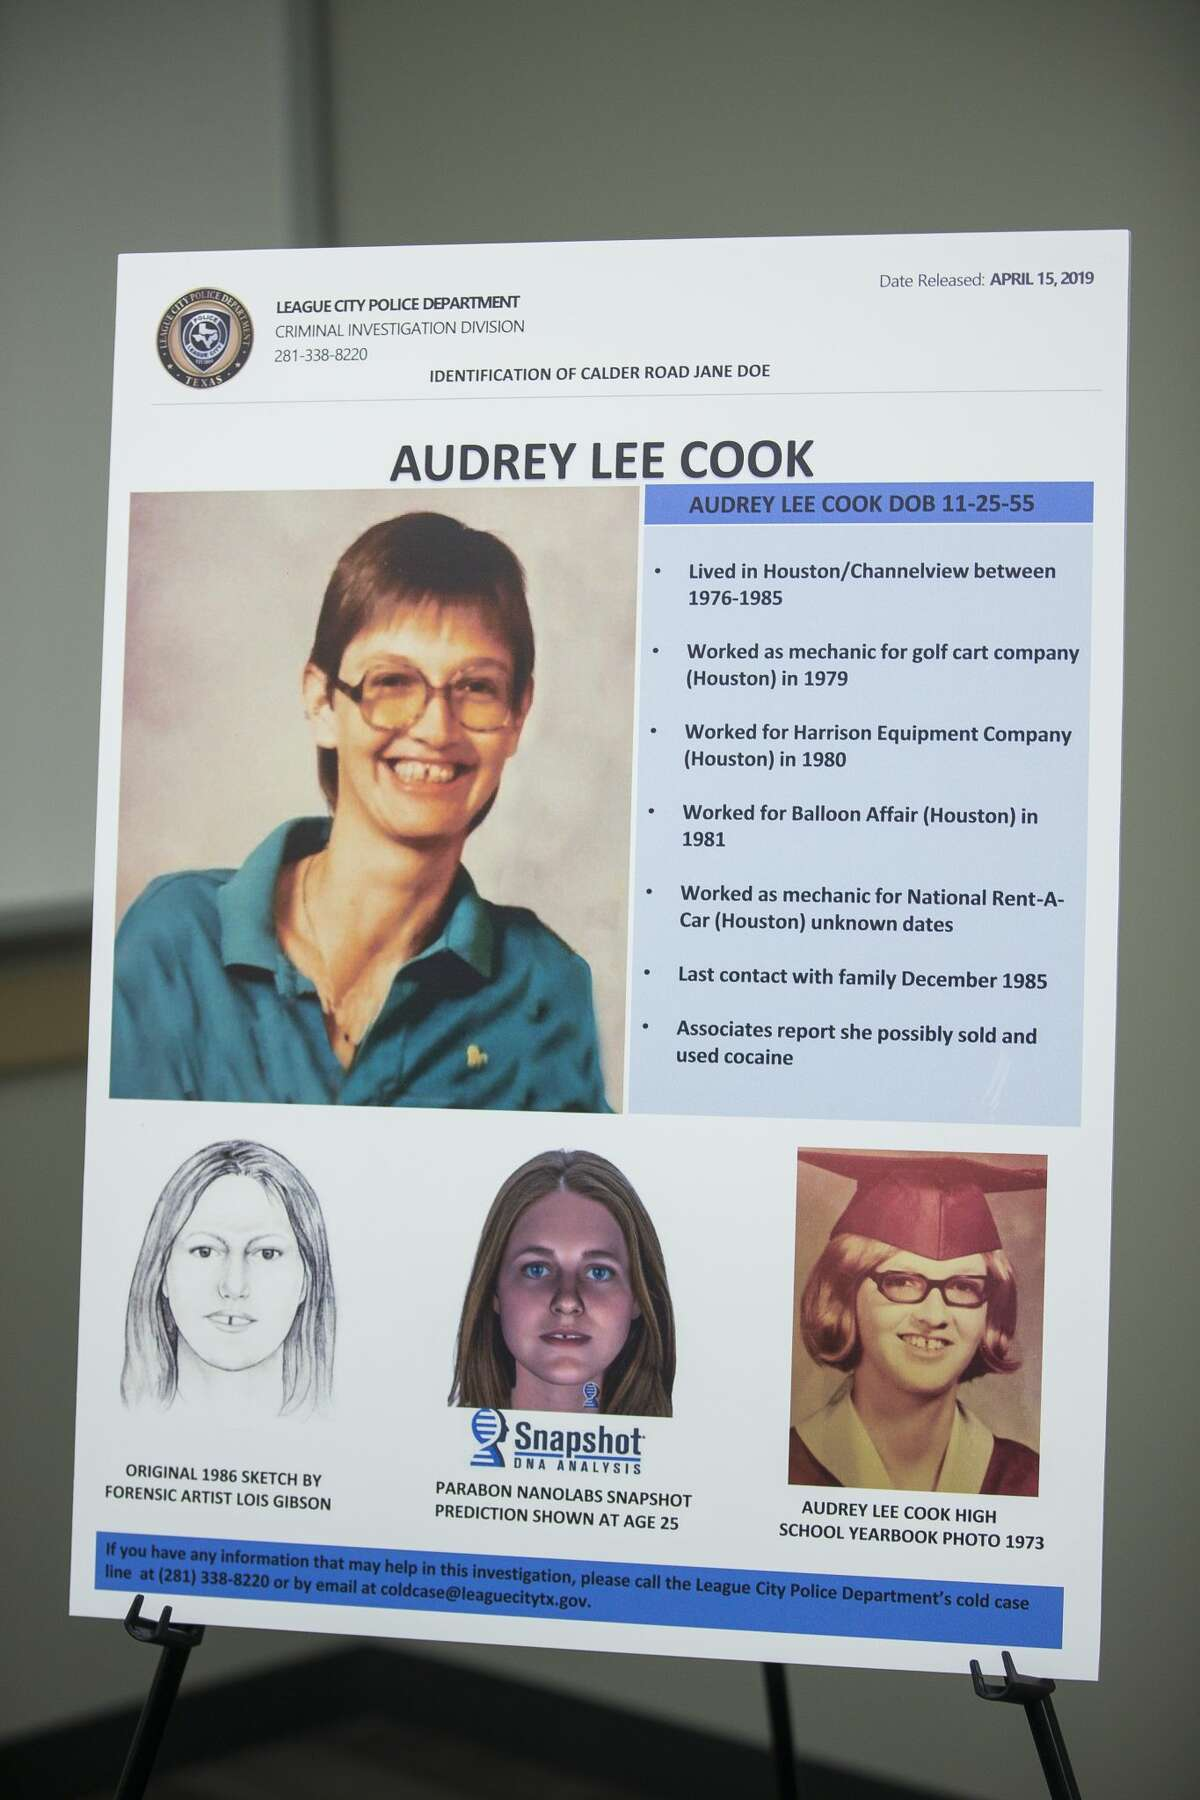 """Law enforcement officials announce the identities of two previously unidentified women who were found dead along with two other women between 1985 and 1991 in an area off of Calder Road in League City during a press conference at the League City Police Department, Monday, April 15, 2019. The victim known as """"Jane Doe"""" was identified as Audrey Lee Cook, who police estimated was about 30 at the time her body was found in 1986. The other woman, known until now as """"Janet Doe,"""" was Donna Prudhomme, about 34 when her body was found in 1991."""